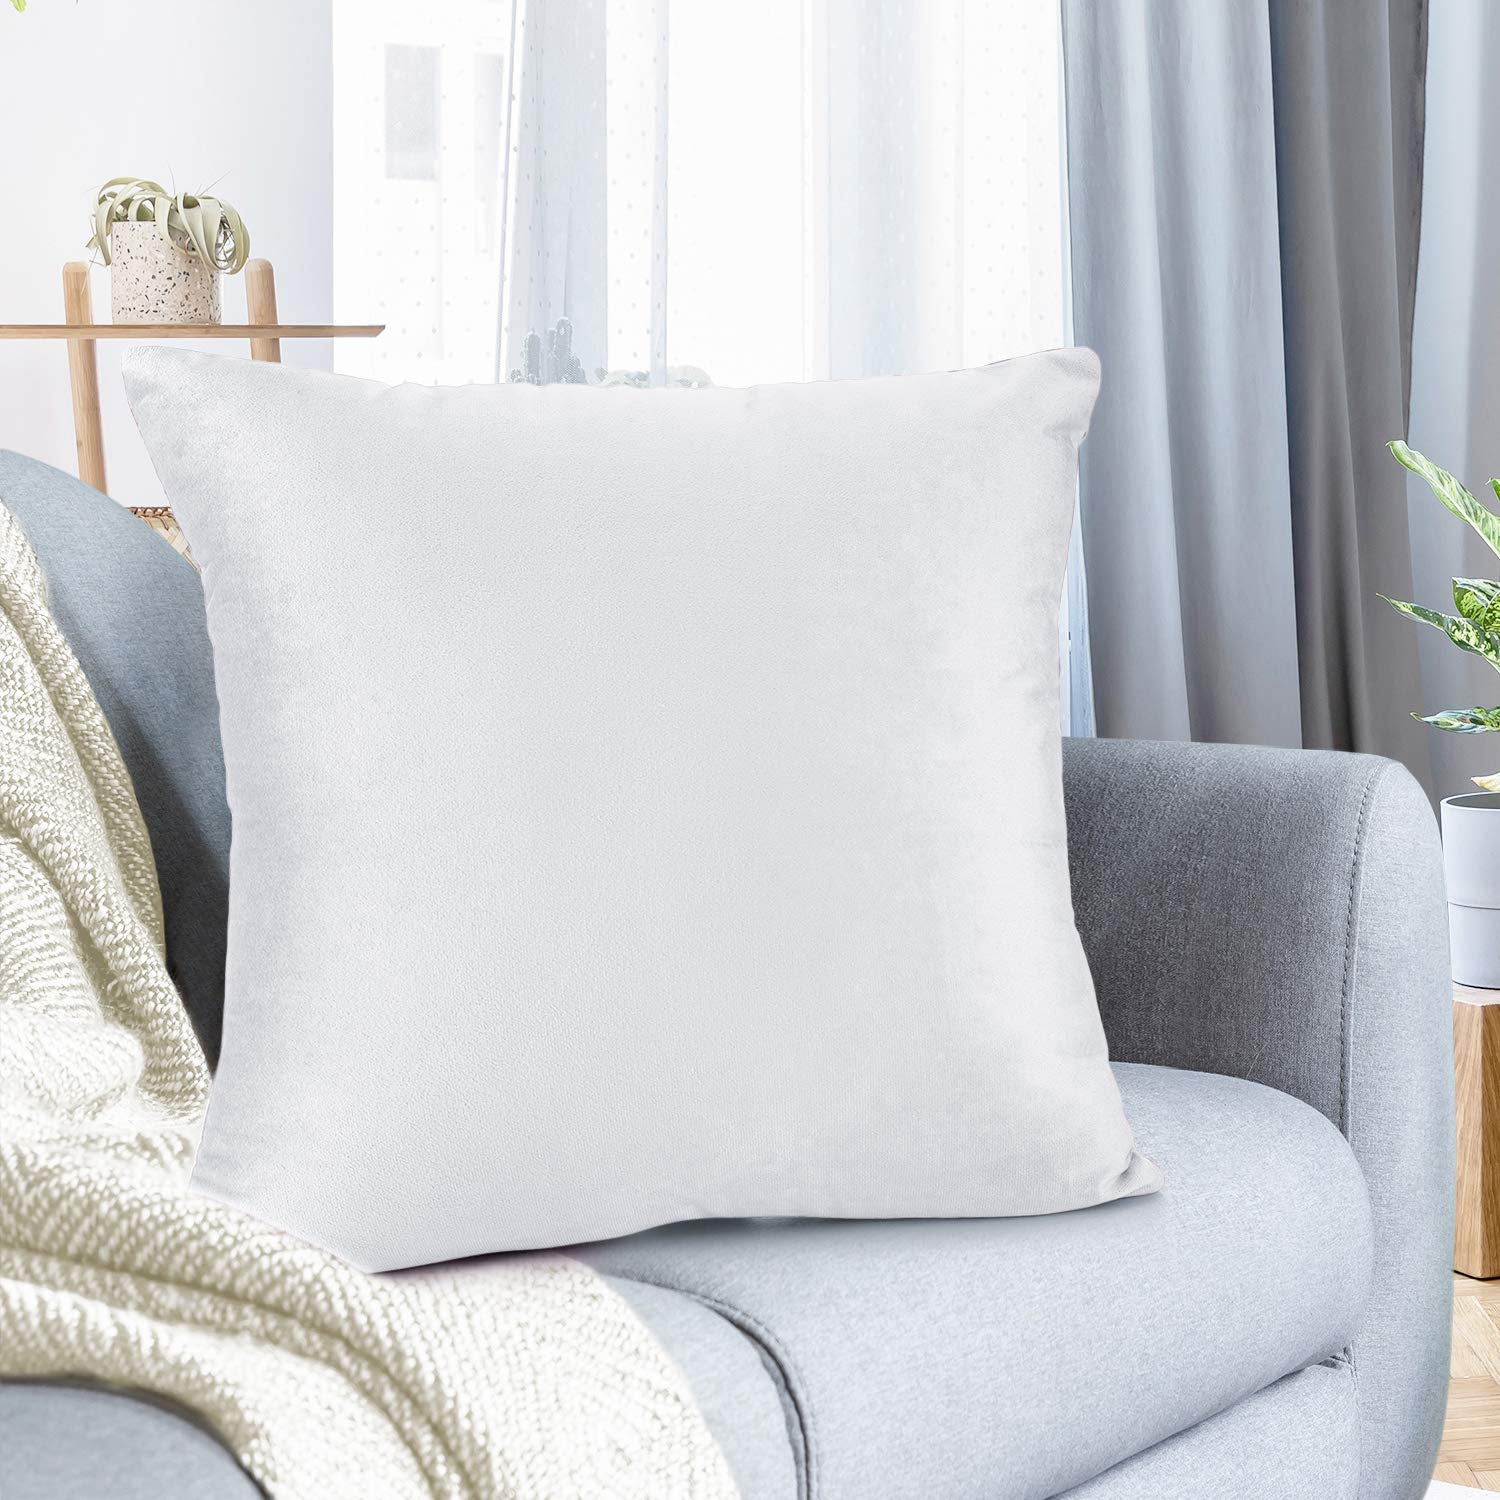 """Nestl Bedding Throw Pillow Cover 20"""" x 20"""" Soft Square Decorative Throw Pillow Covers Cozy Velvet Cushion Case for Sofa Couch Bedroom - White"""